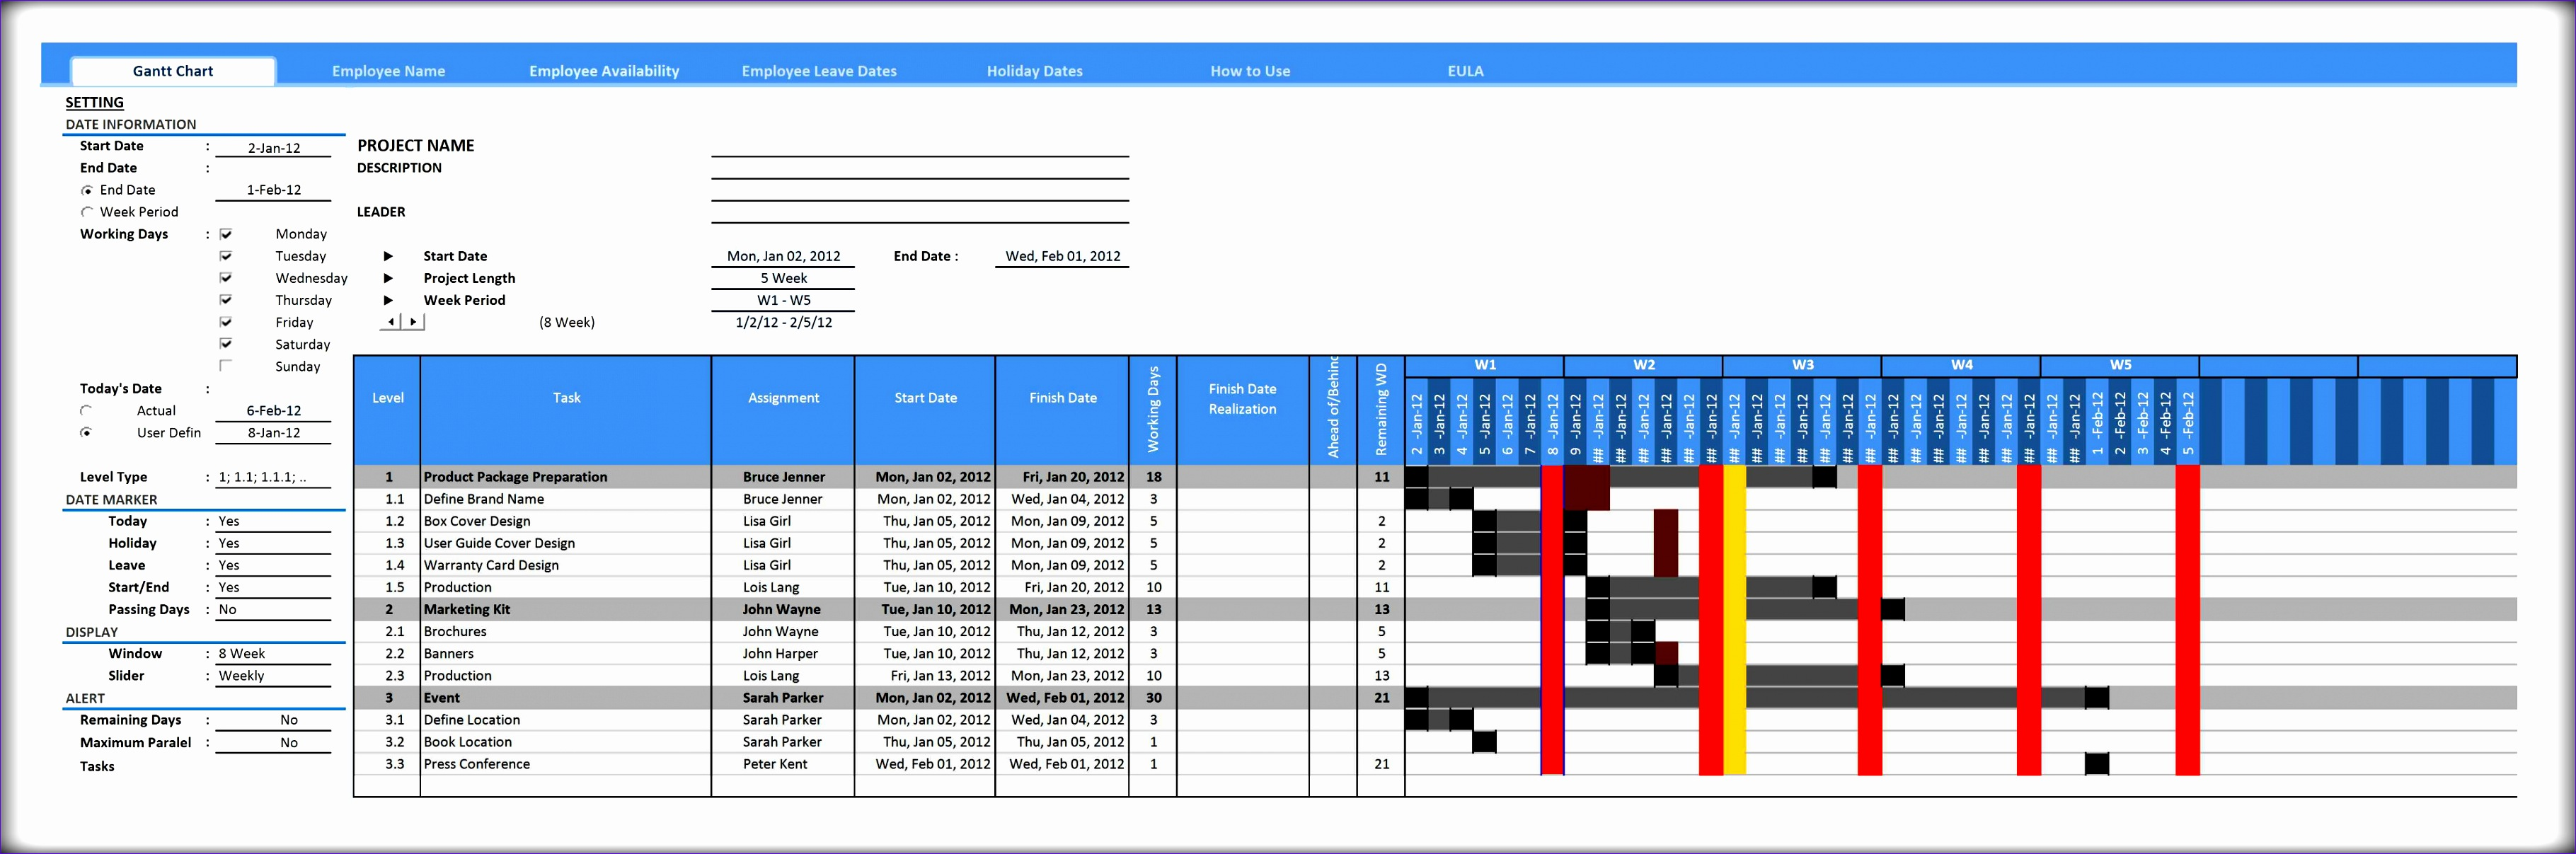 7 microsoft excel gantt chart template free download